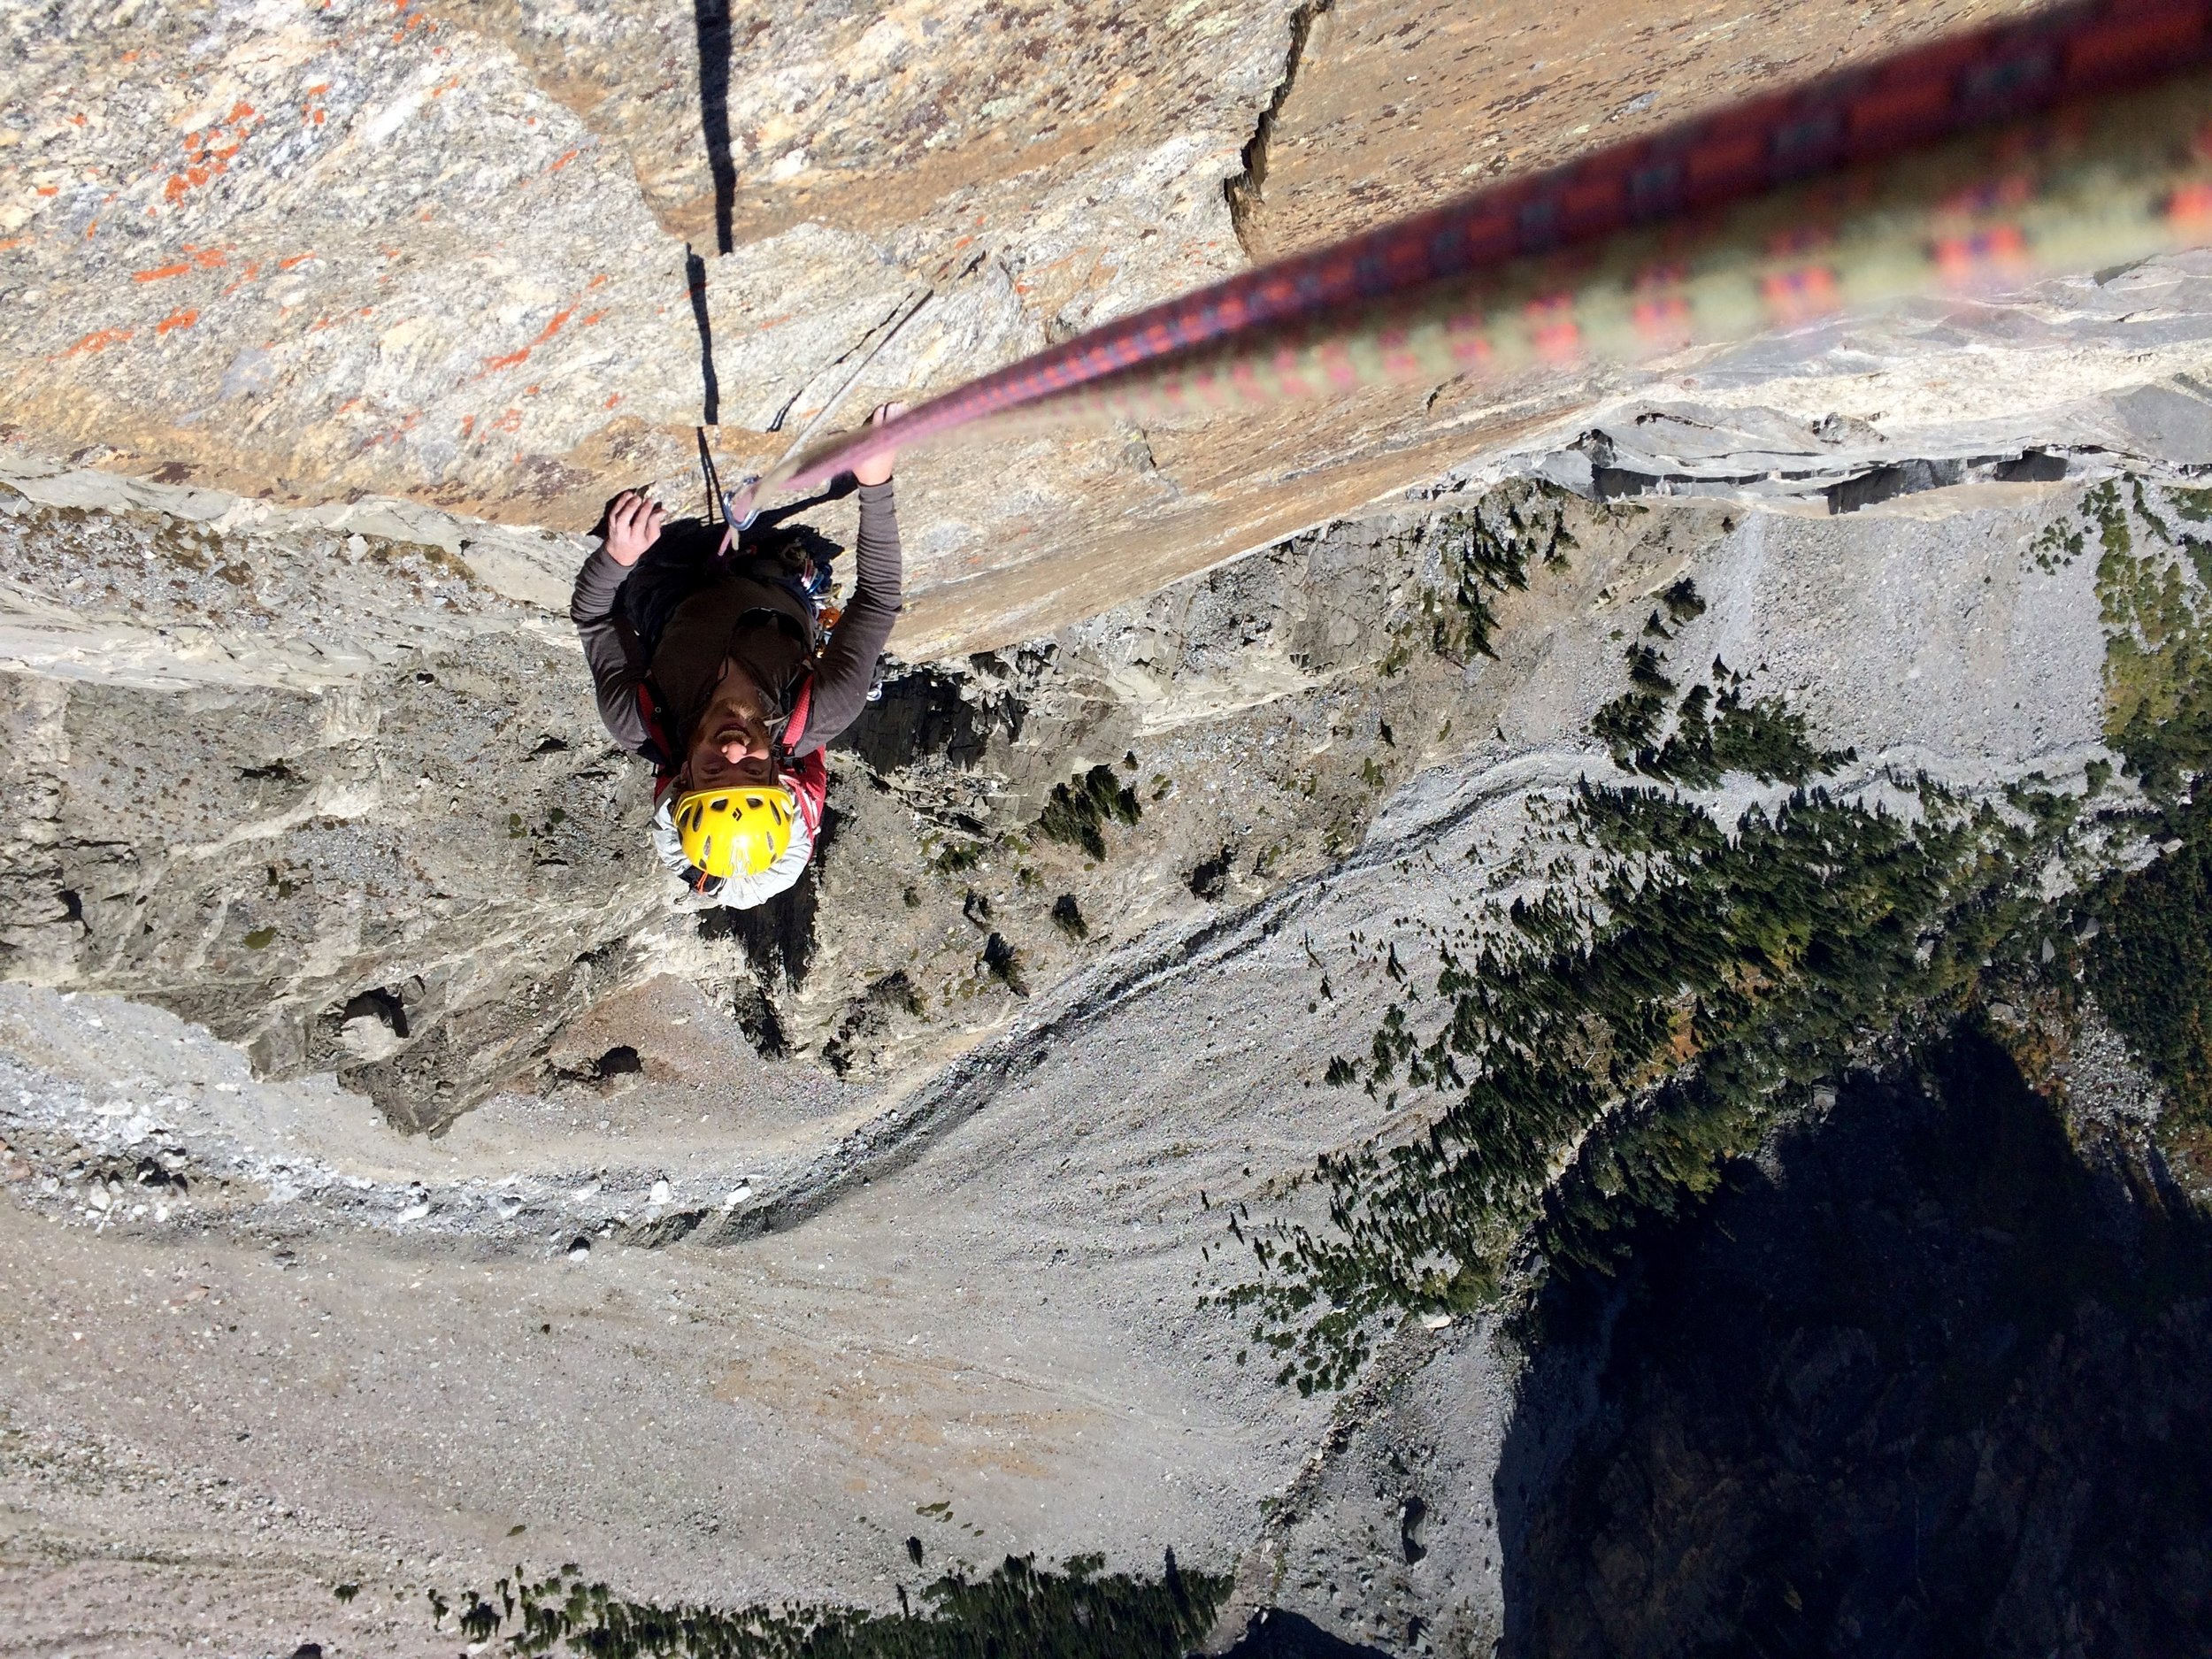 The upper pitches of the DSB route (prior to the summit ridge) were steep and exposed!